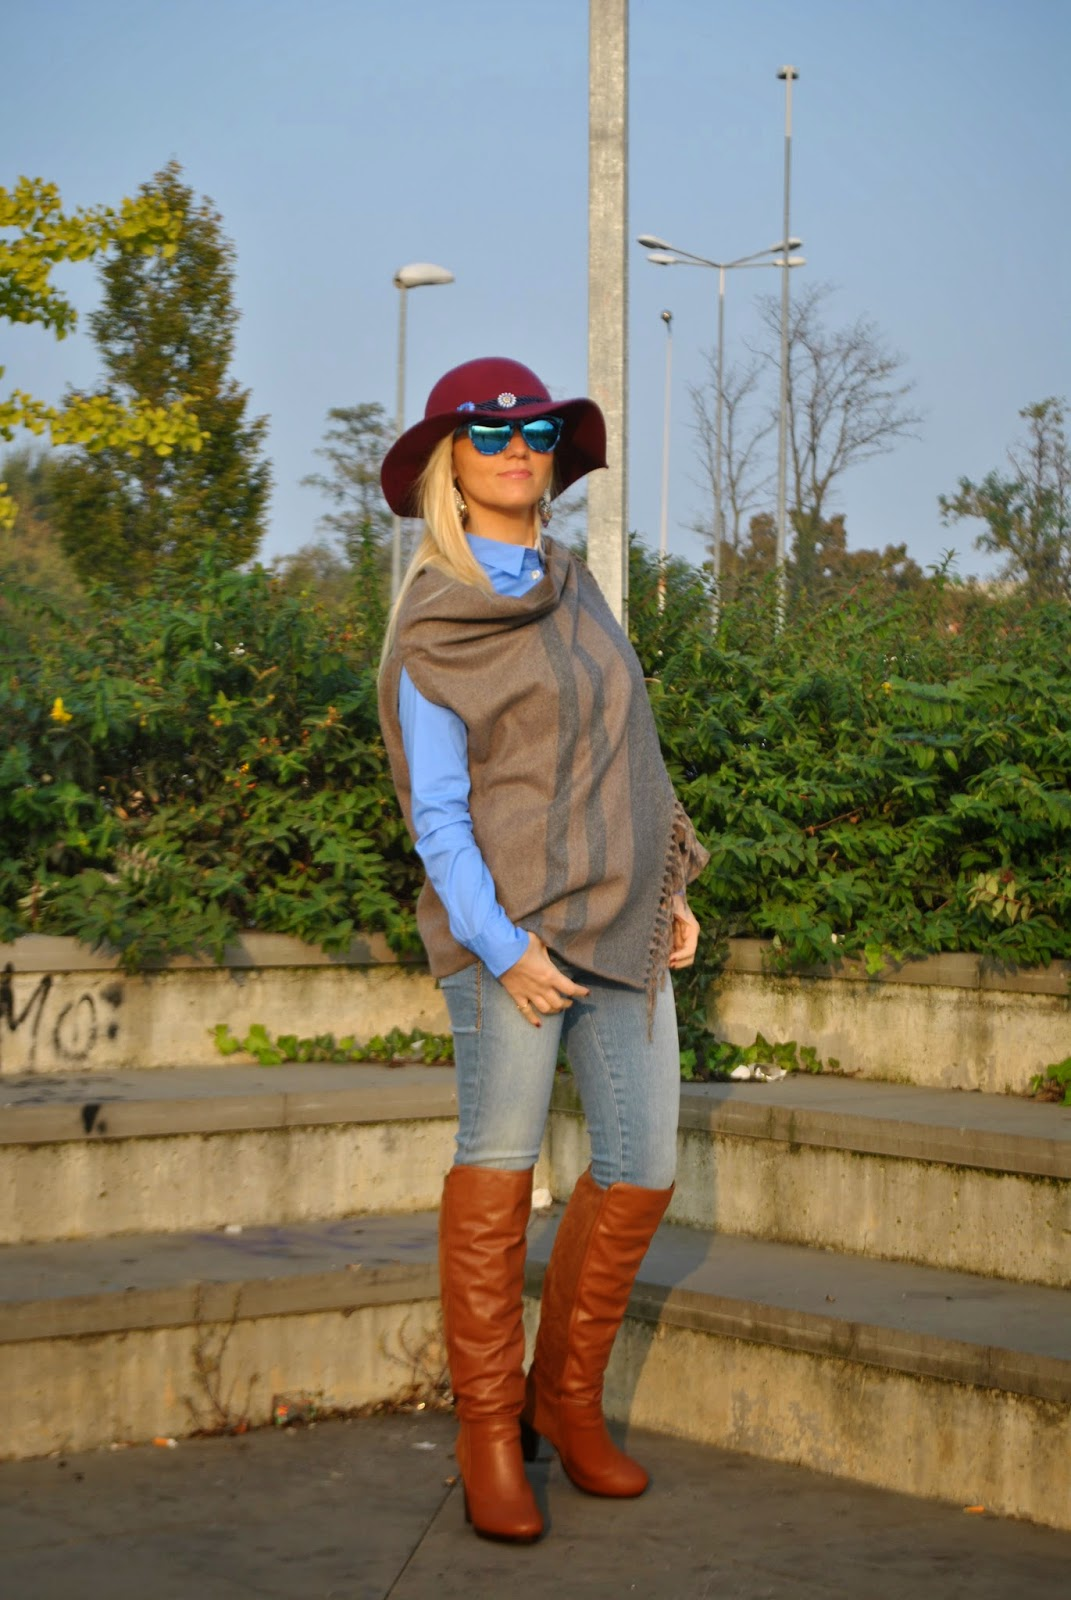 autumnal outfit  how to wear cape outfit cape cape street style outfit hat fashion bloggers italy italian girl  outfit mantella outfit casual abbinamenti mantella outfit jeans e mantella outfit stivali cuissardes outfit camicia azzurra outfit jeans fornarina come abbinare la mantella outfit cappello zara jeans e stivali abbinamenti stivali e jeans orecchini majique majique london earringss zara hat fornarina botton up mantella liu jo how to wear cape outfit cape outfit autunnali outfit casual autunnali outfit ottobre 2014 fashion blogger italiane fashion blogger bionde mariafelicia magno fashion blogger outfit colorblock by felym mariafelicia magno fashion blogger di color block by felym come abbinare il cappello cappello burgundy majique london earrings occhiali da sole con lenti a specchio azzurre excape